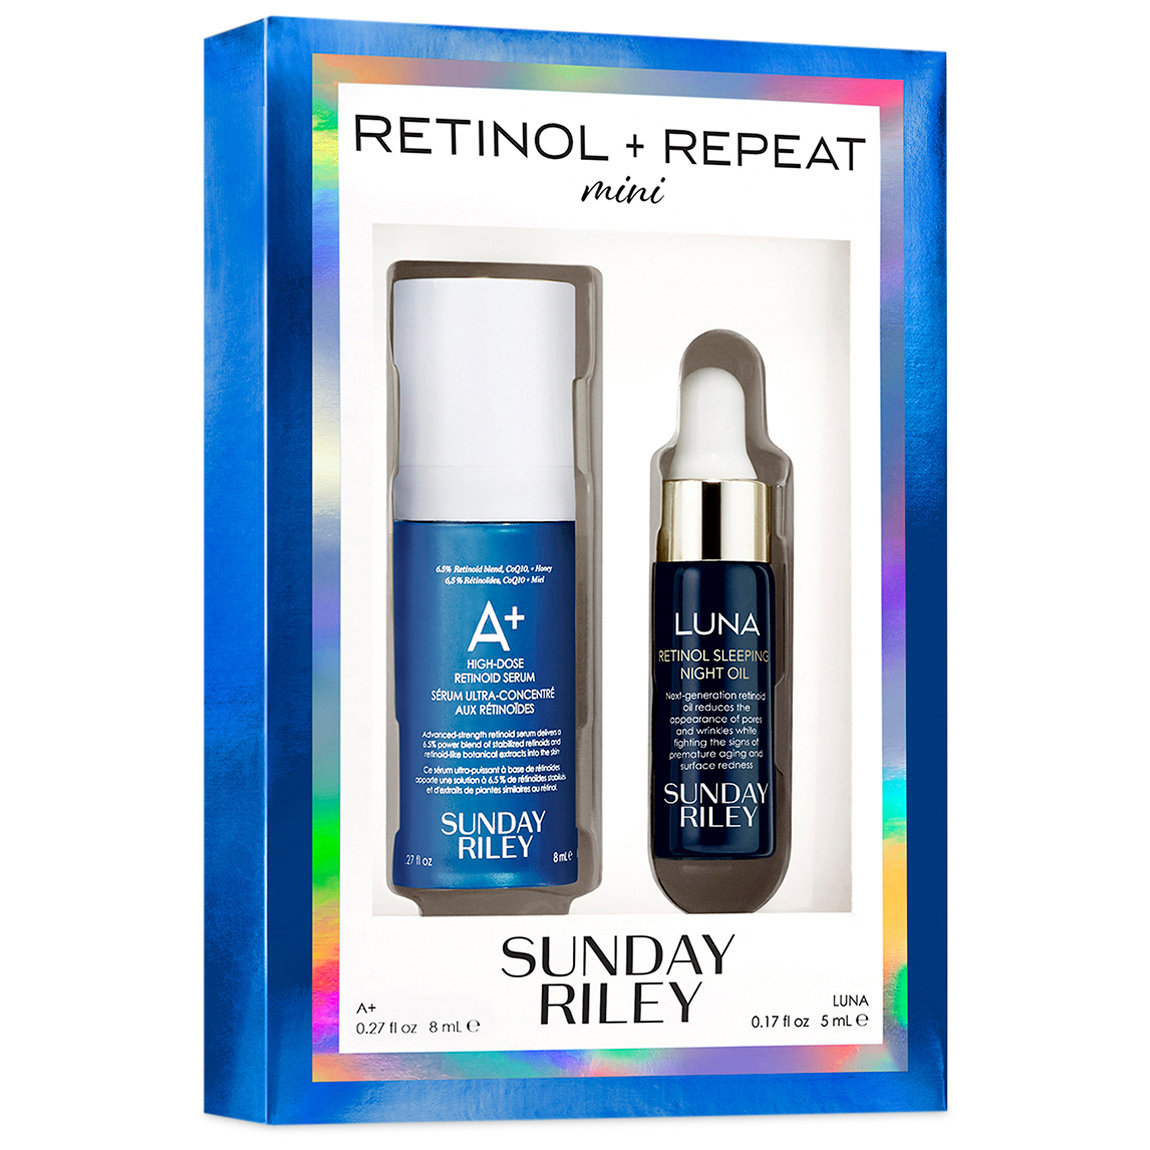 Sunday Riley Mini Retinol and Repeat product swatch.